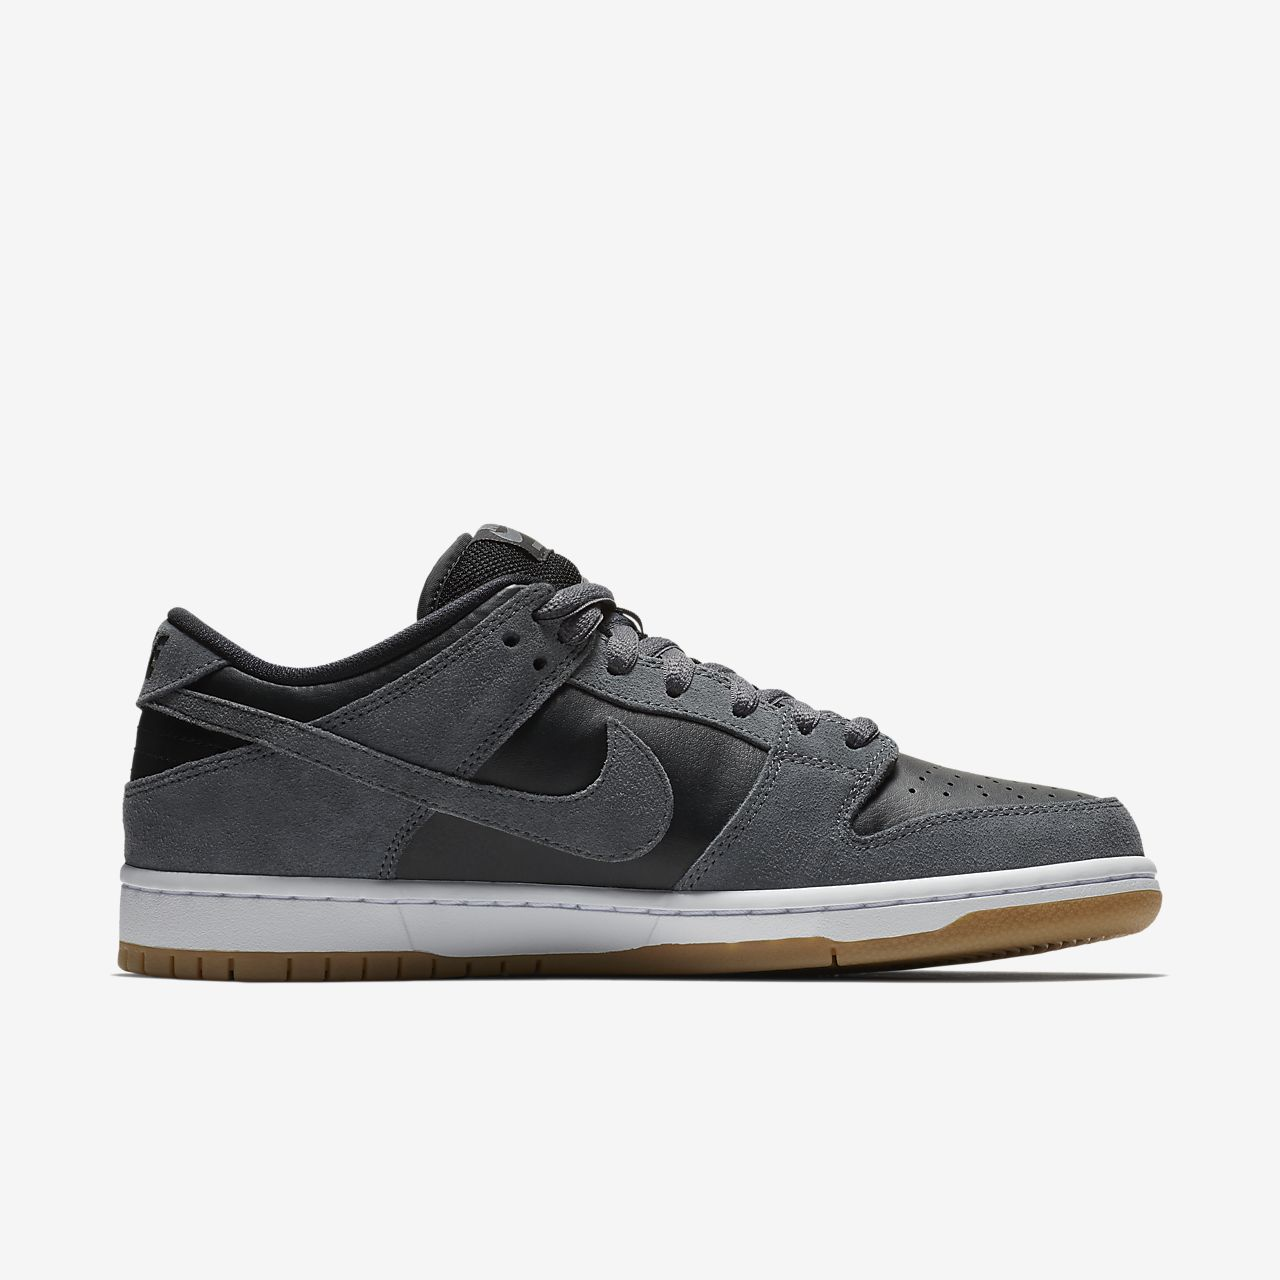 timeless design 99ad2 d8f27 ... Chaussure de skateboard Nike SB Dunk Low TRD pour Homme